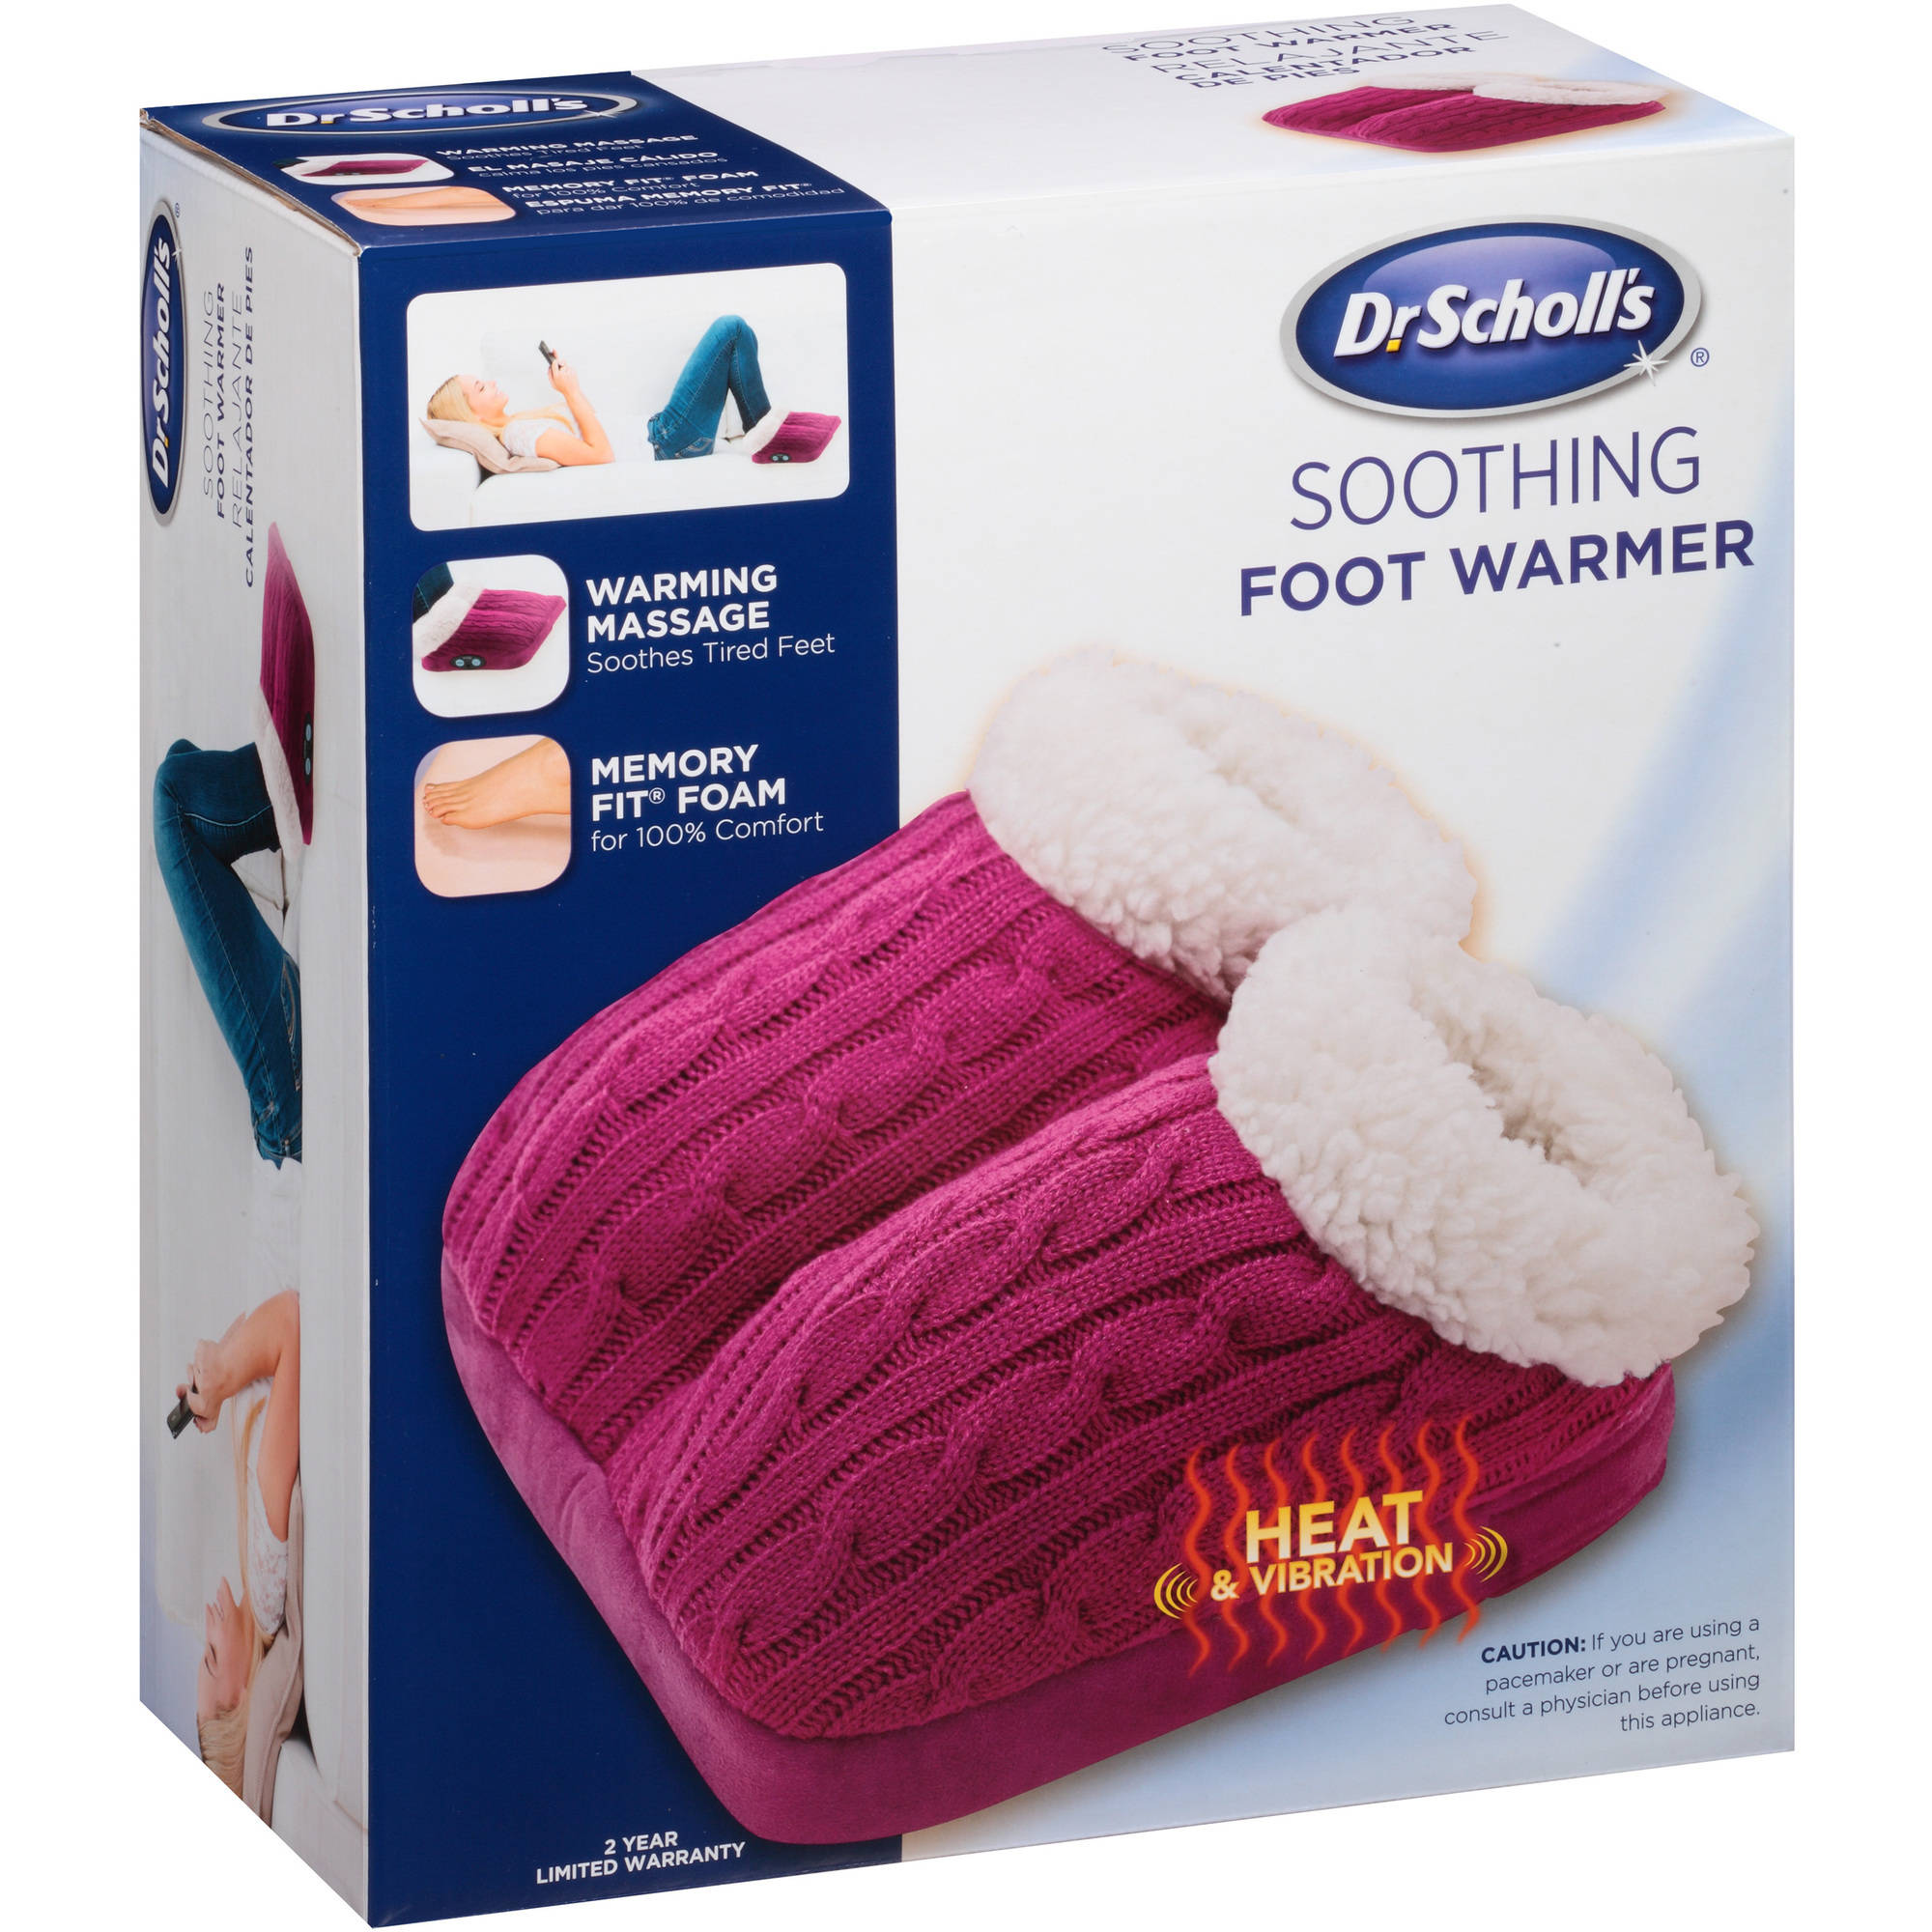 Dr. Scholl's Soothing Foot Warmer, Red